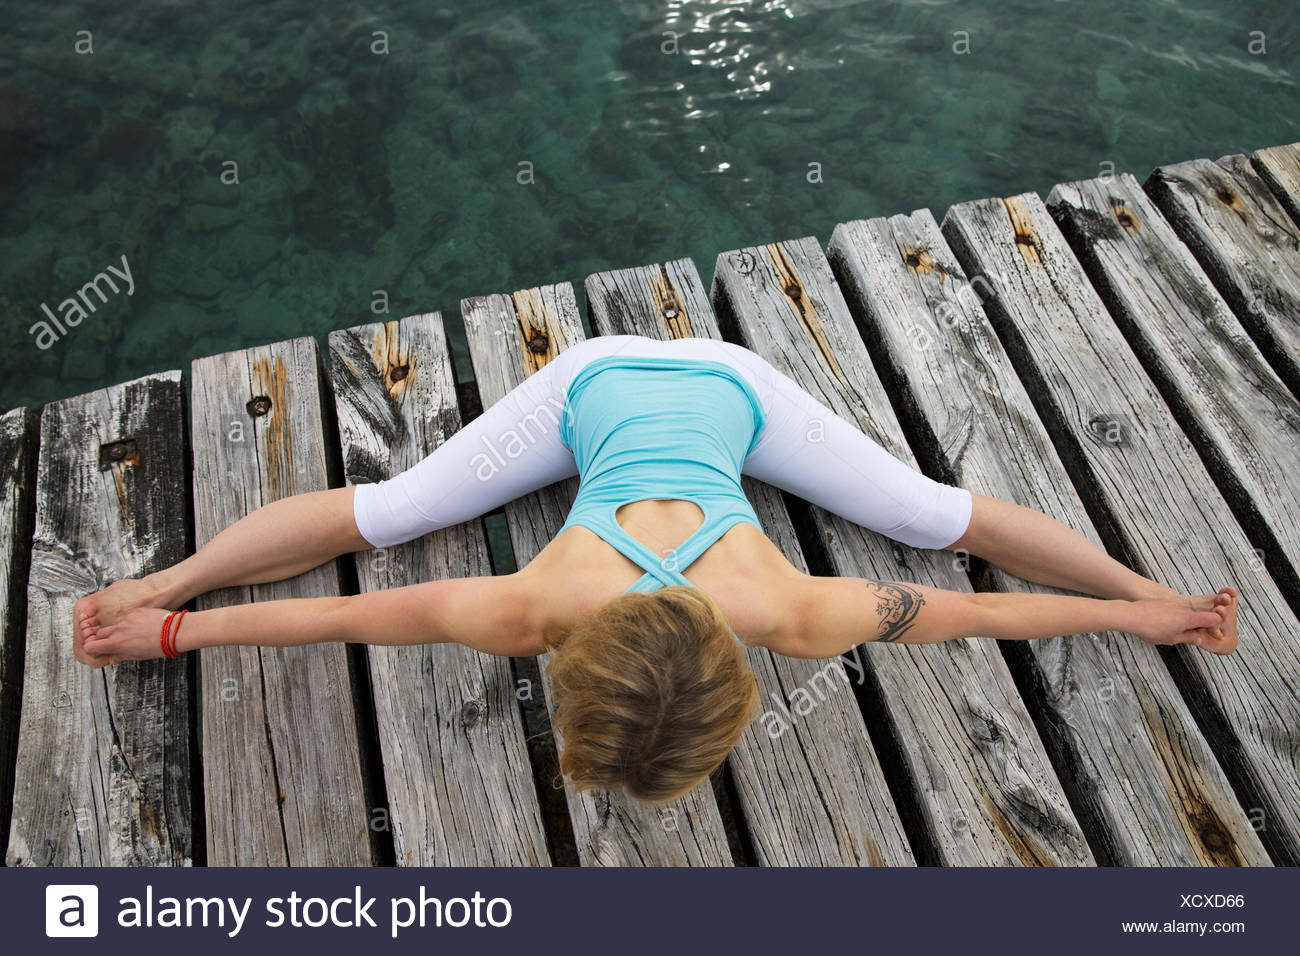 Overhead view of mid adult woman with arms and legs outstretched practicing yoga on wooden sea pier - Stock Image